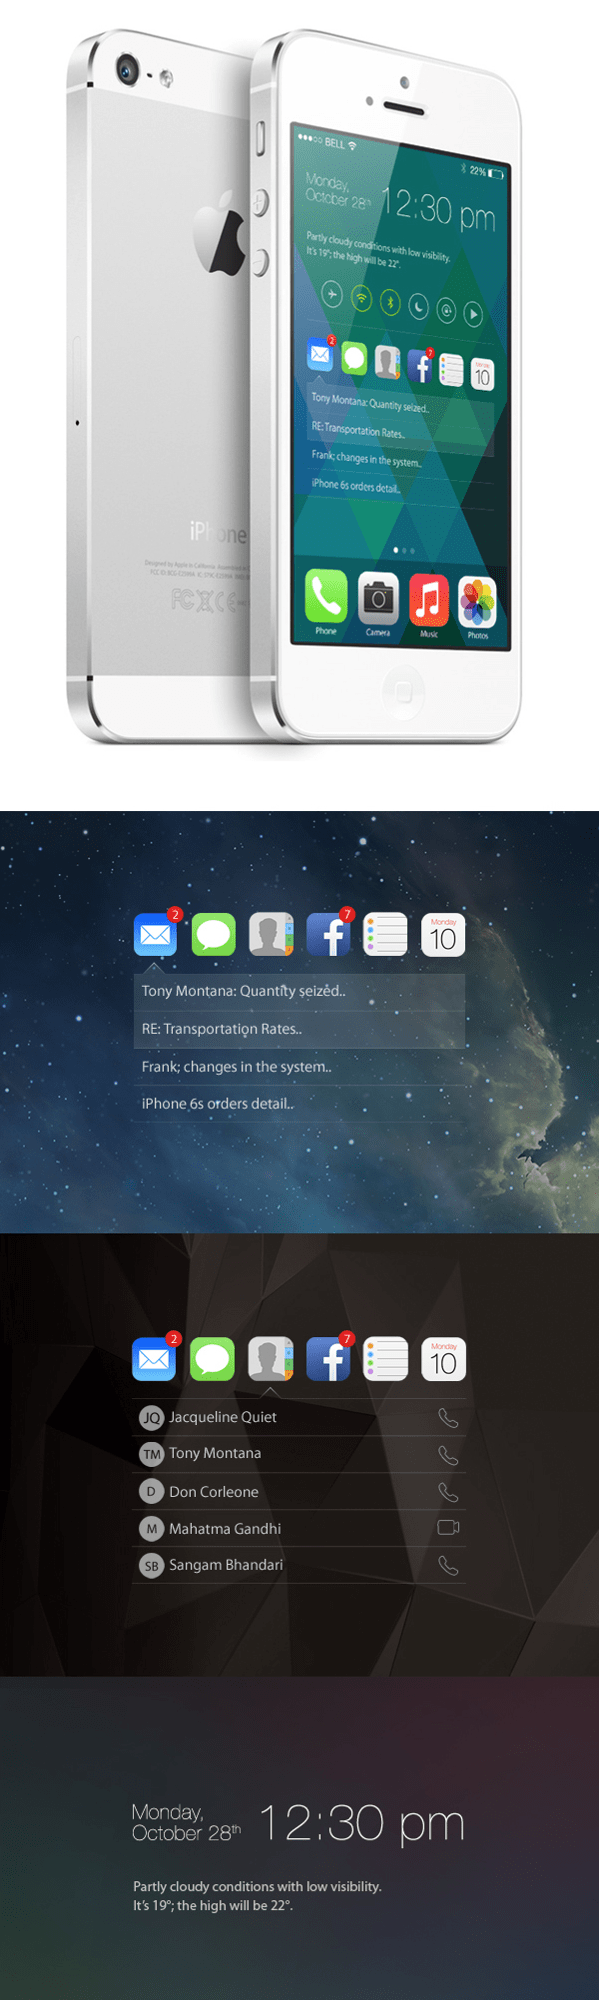 Apple iOS Concept